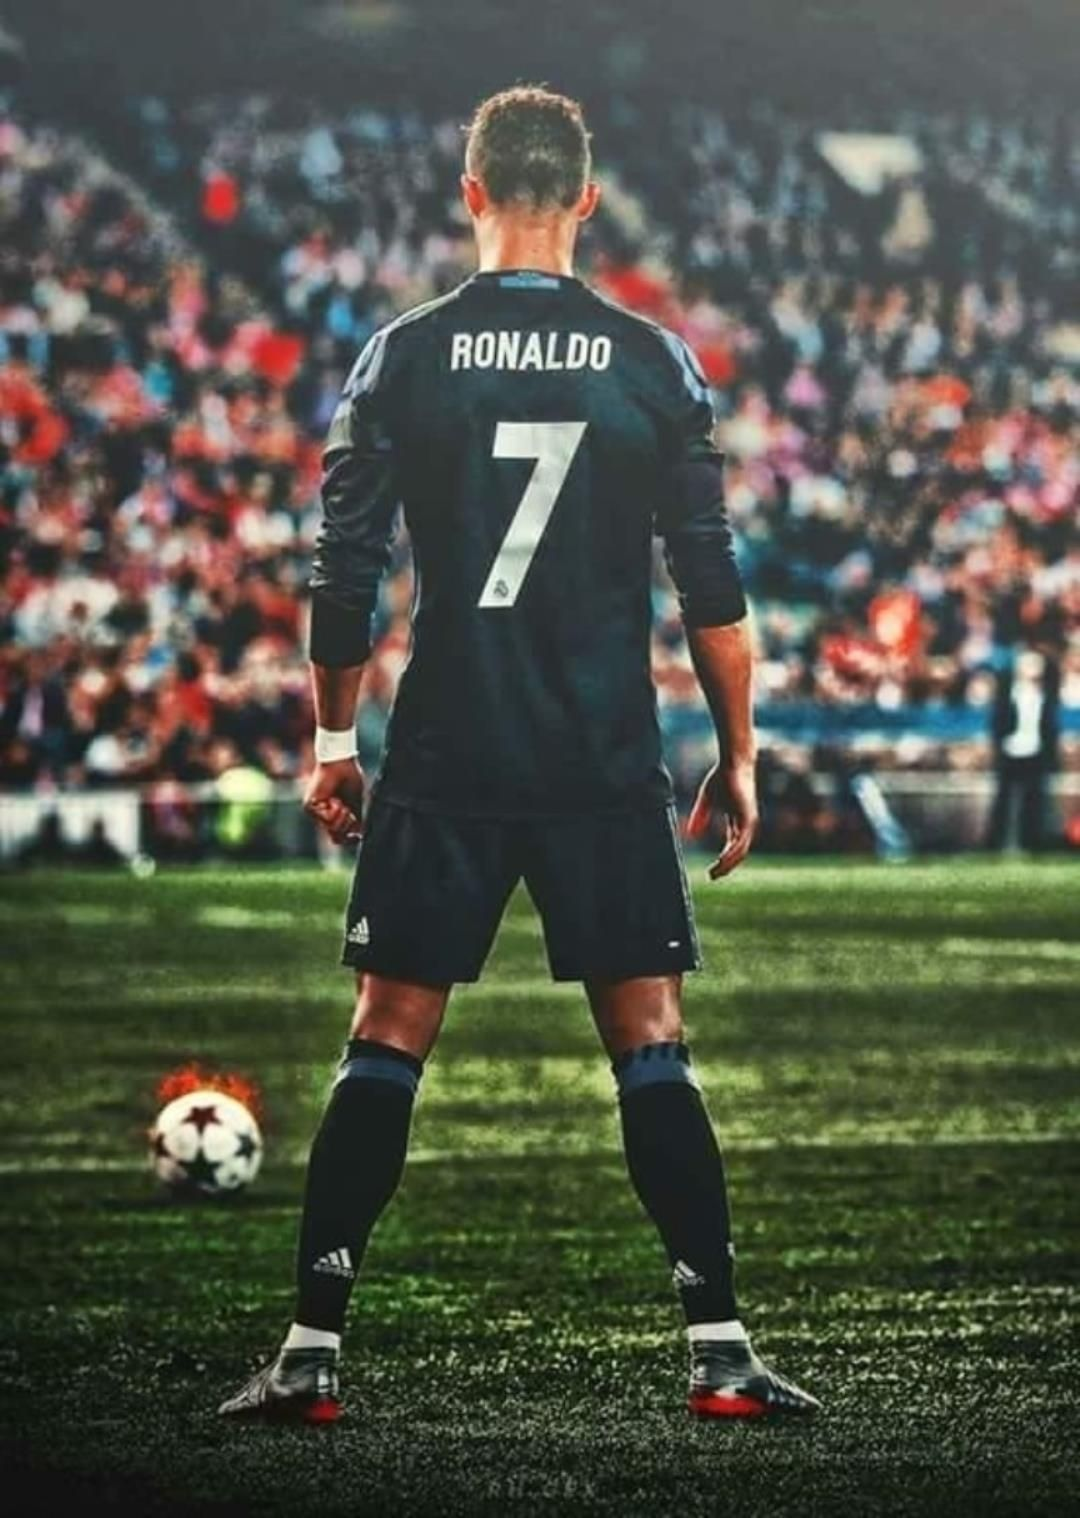 Football Ronaldo Juventus Real Madrid Tall Wallpapers Cristiano Ronaldo Ronaldo Cristiano 7